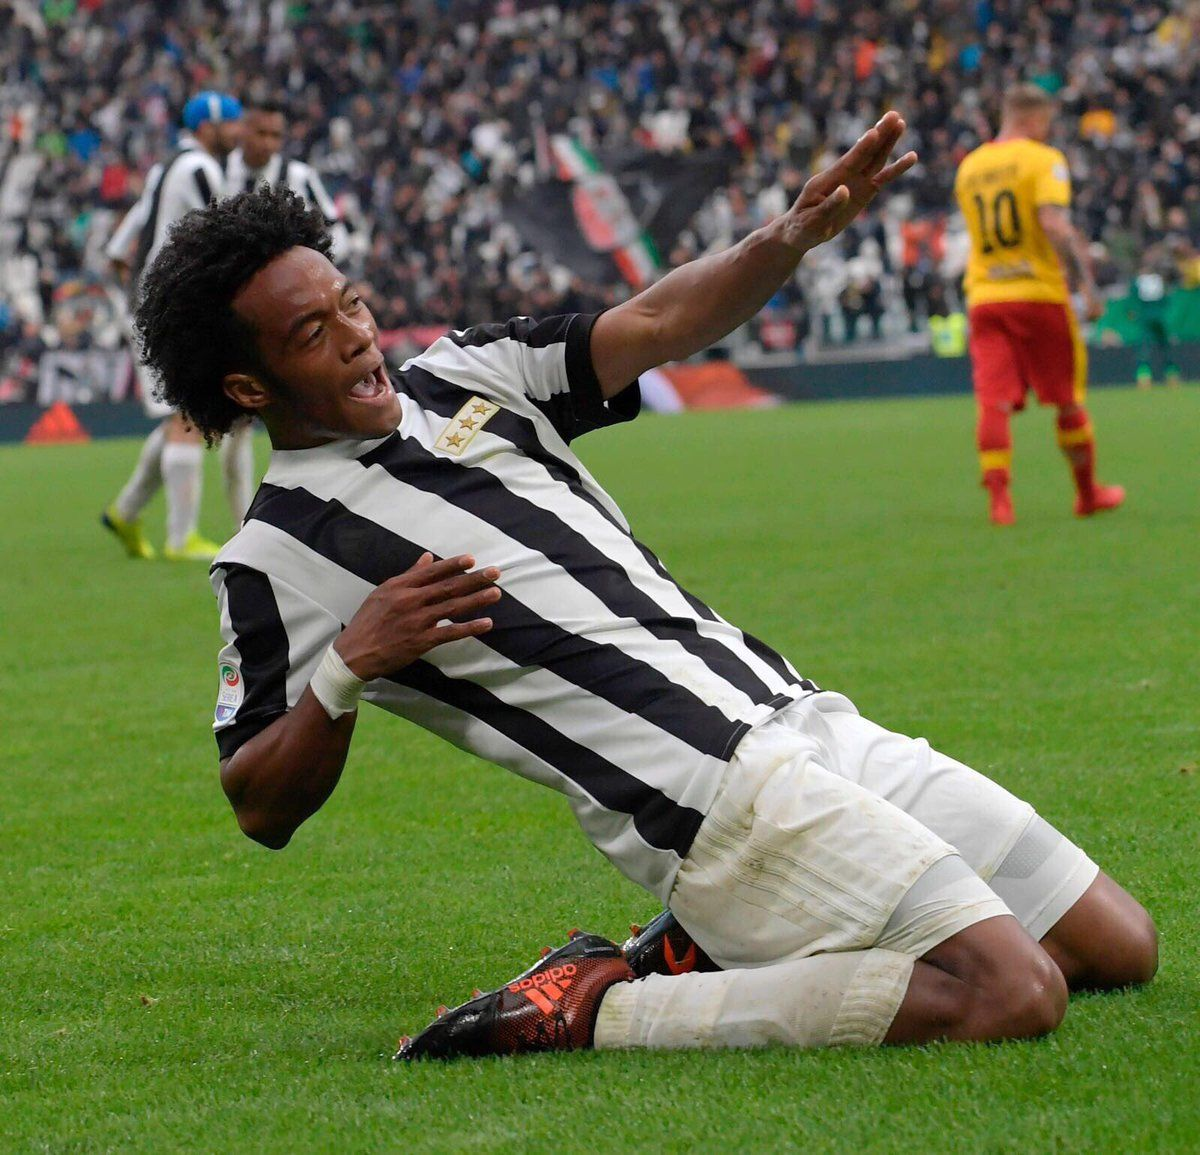 e5478beb9 Juventus today debuted their ultra-classy Adidas 120-years anniversary  jersey.